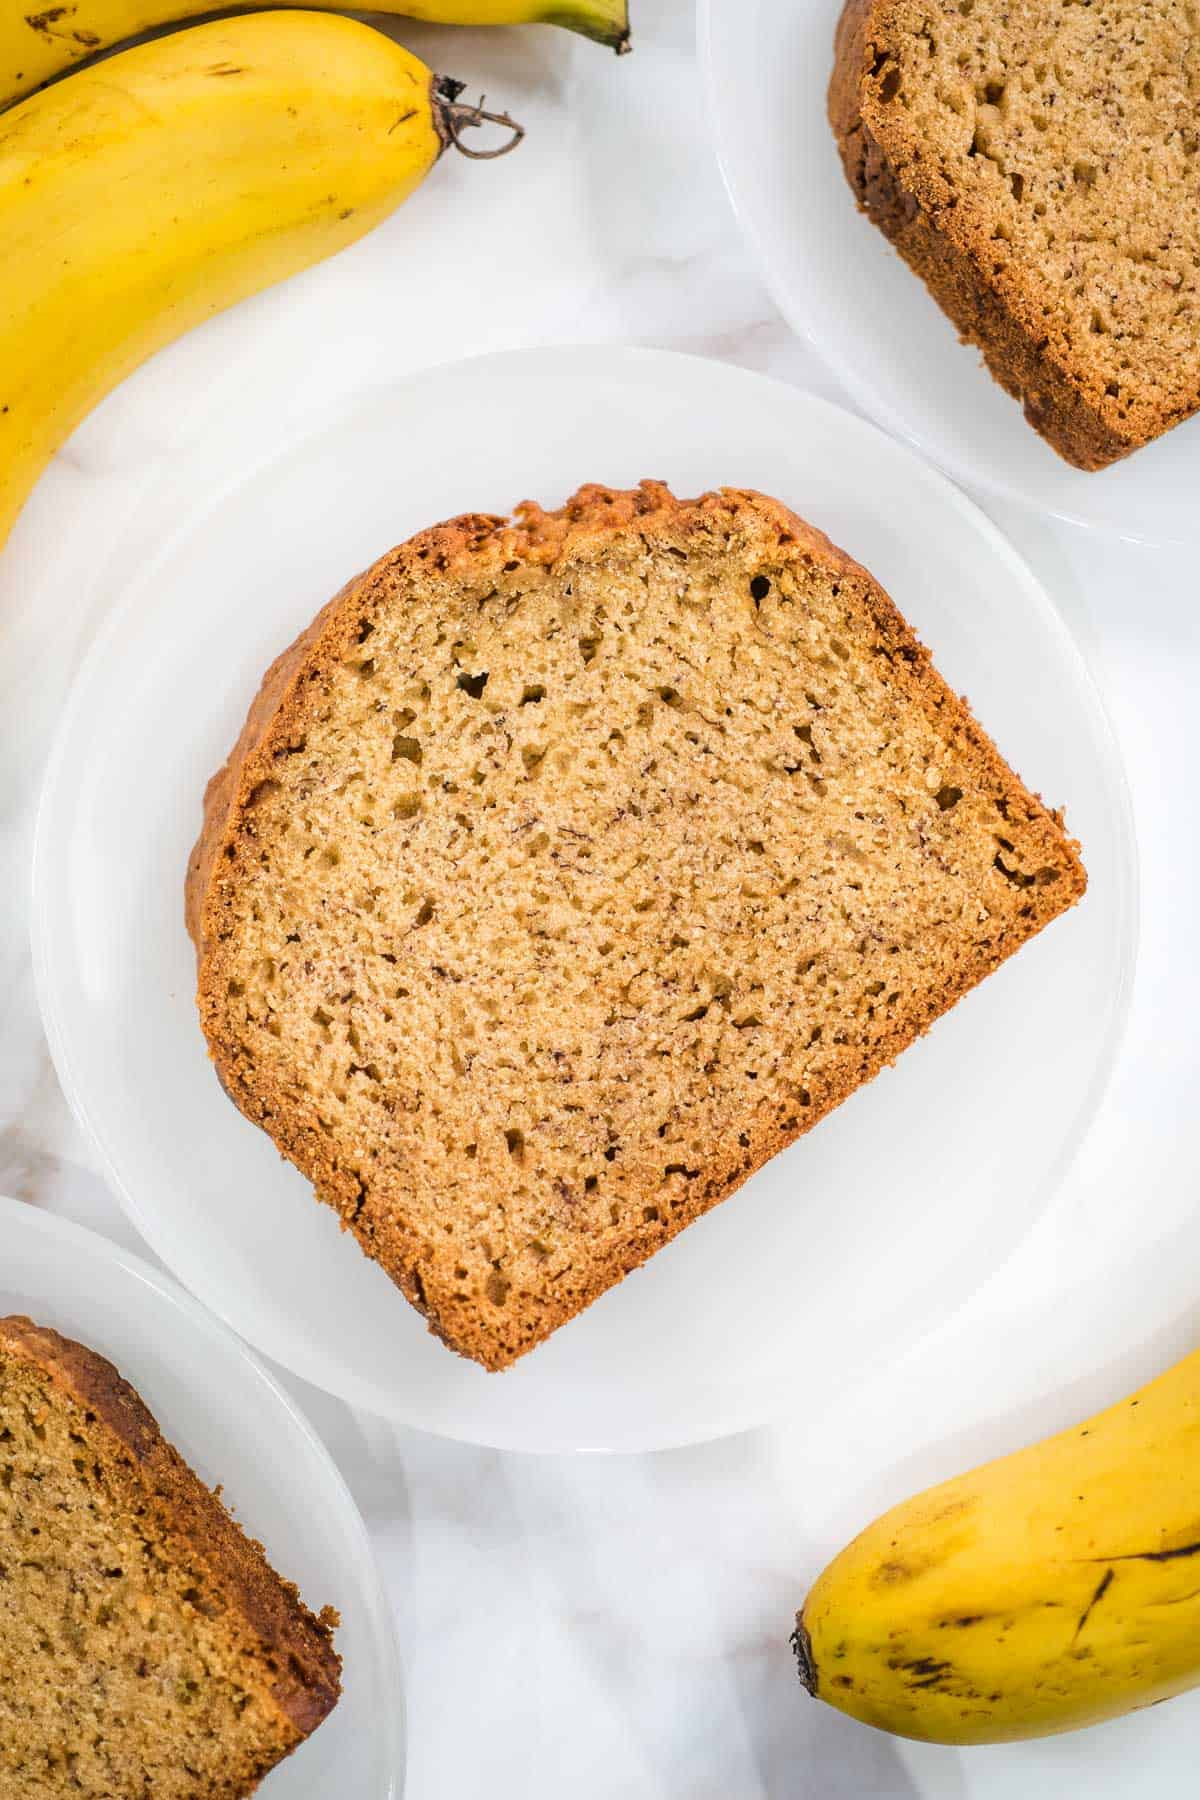 A slice of banana bread on a white plate